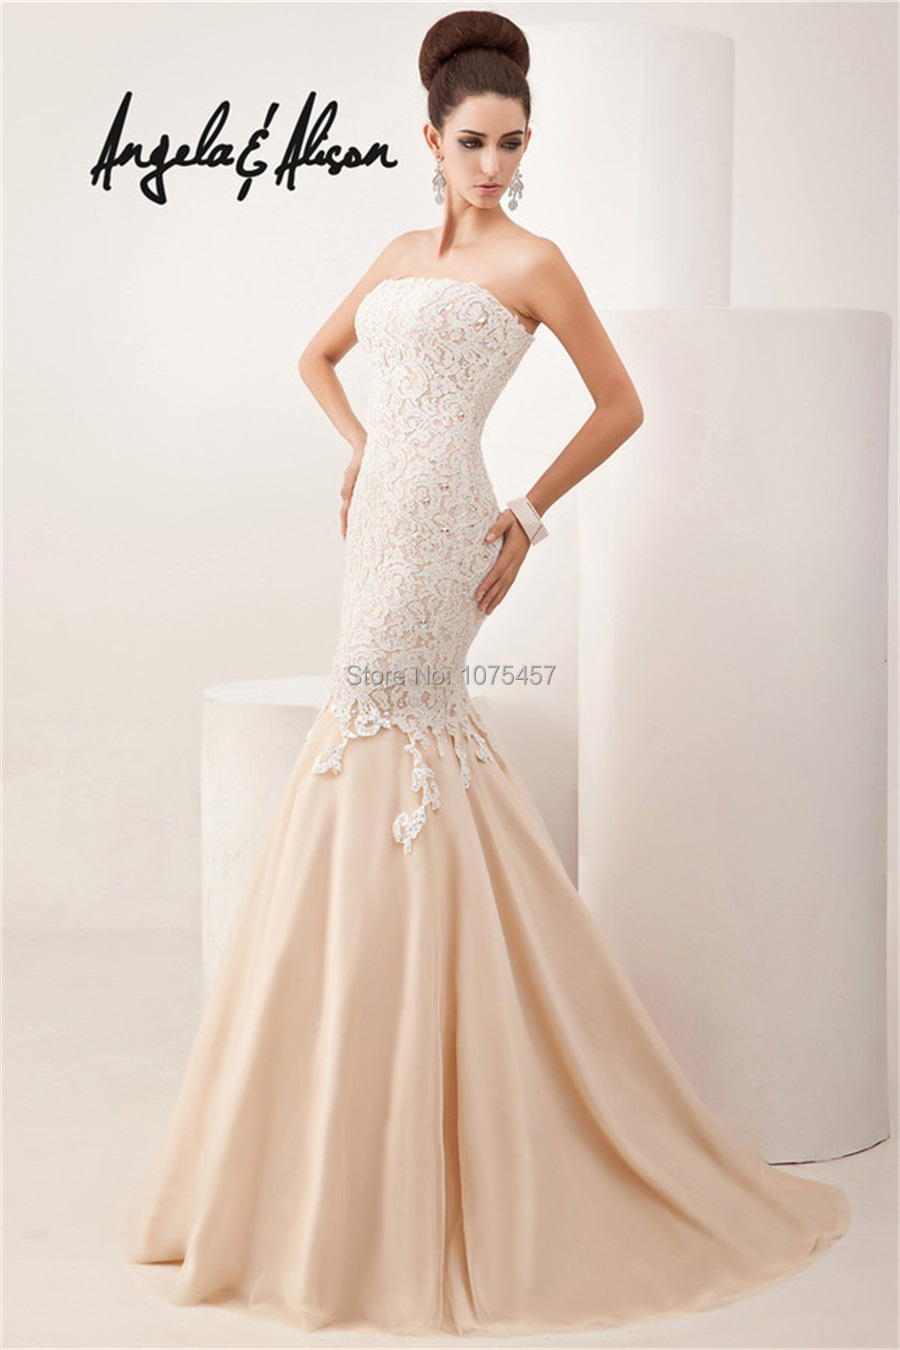 Free Shipping Mermaid Prom Dress With Lace Bodies Strapless 2014 ...